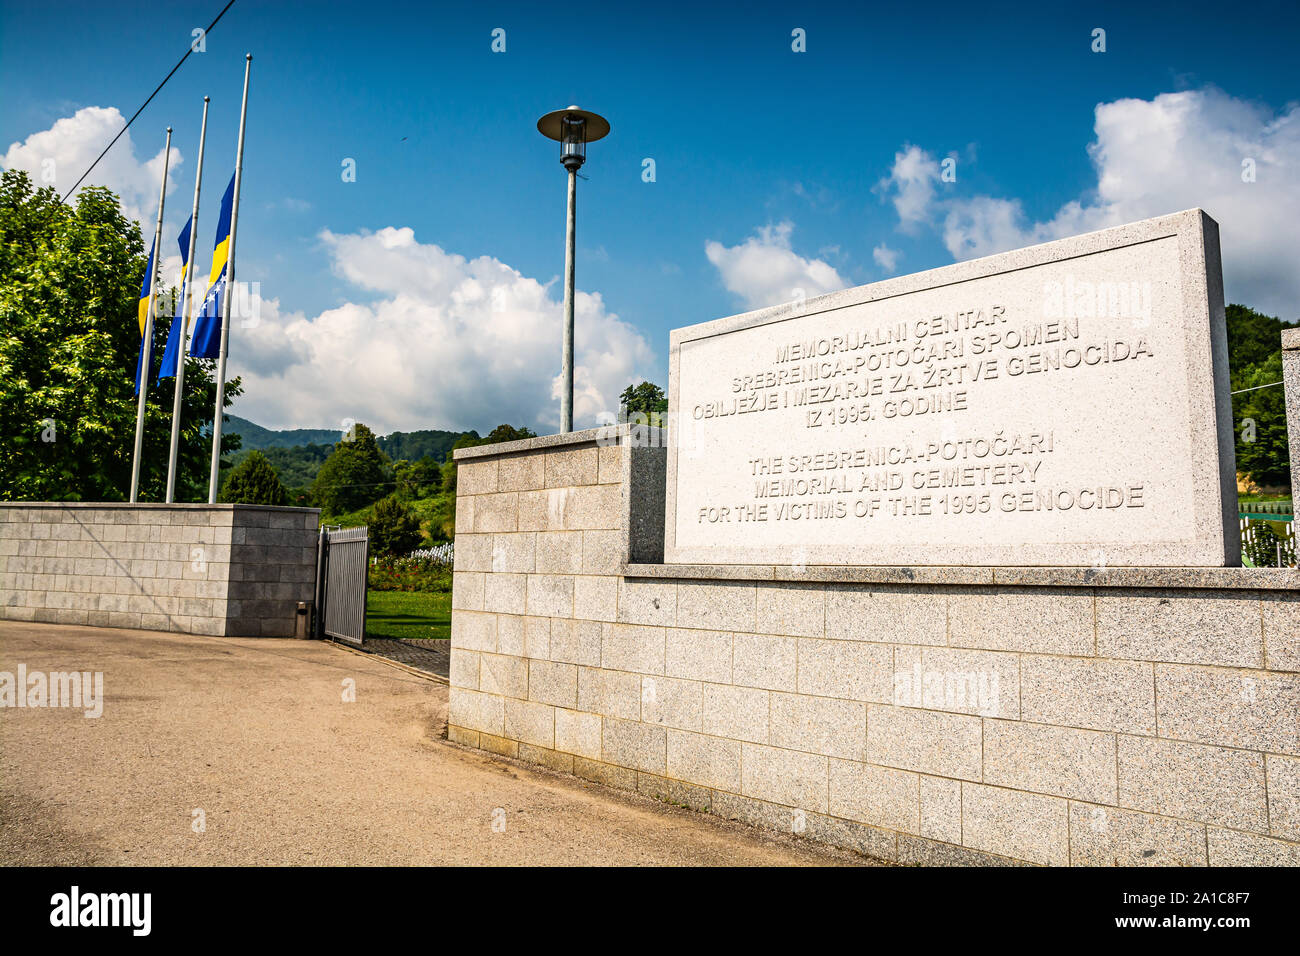 Potocari, Bosnia and Herzegovina - July 31, 2019. Entrance to the area of Memorial and cemetery for victims of 1995 genocide Stock Photo